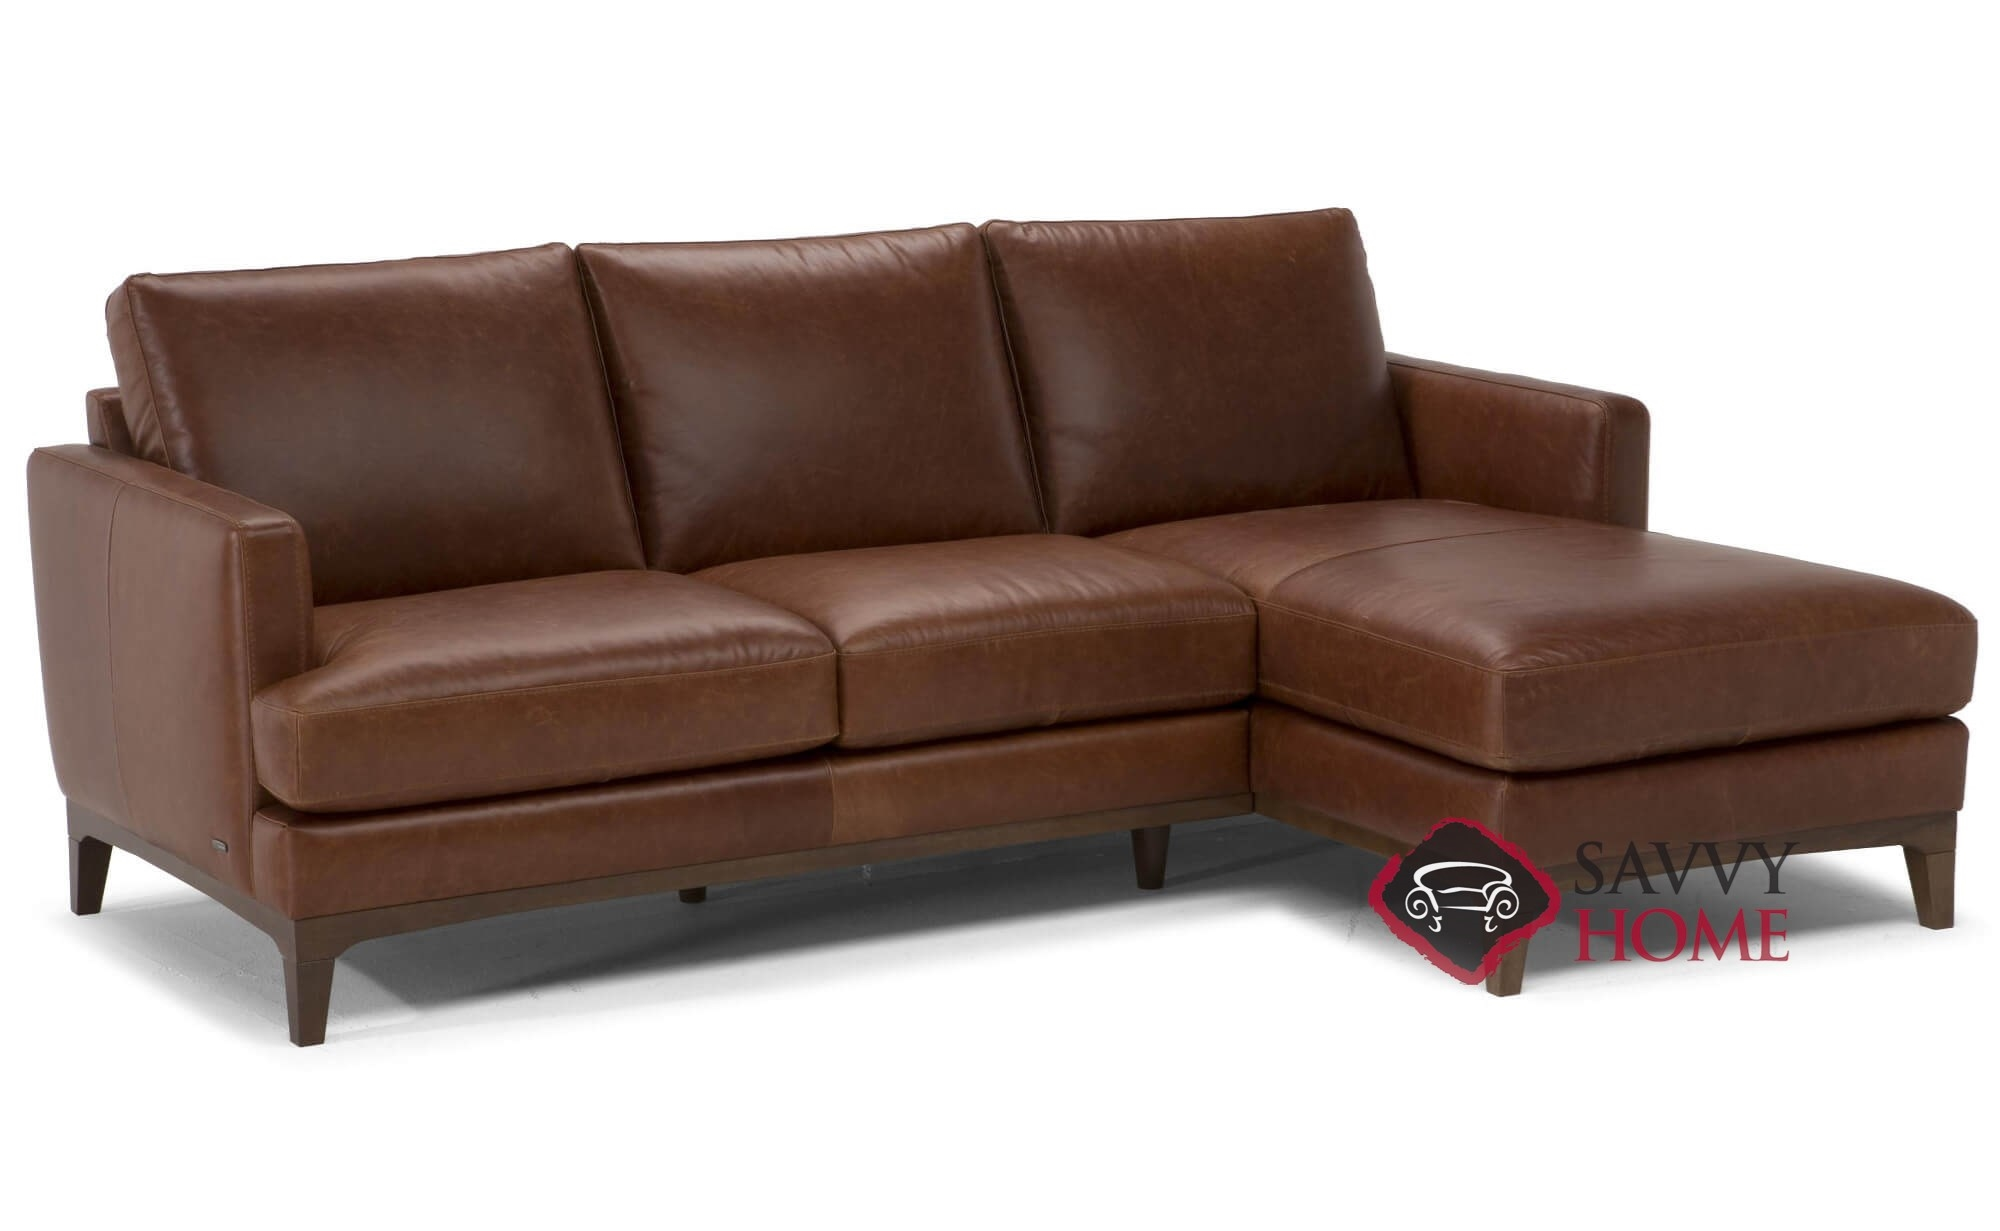 Bevera Leather Chaise Sectional By Natuzzi Editions B970 016 017 047 049